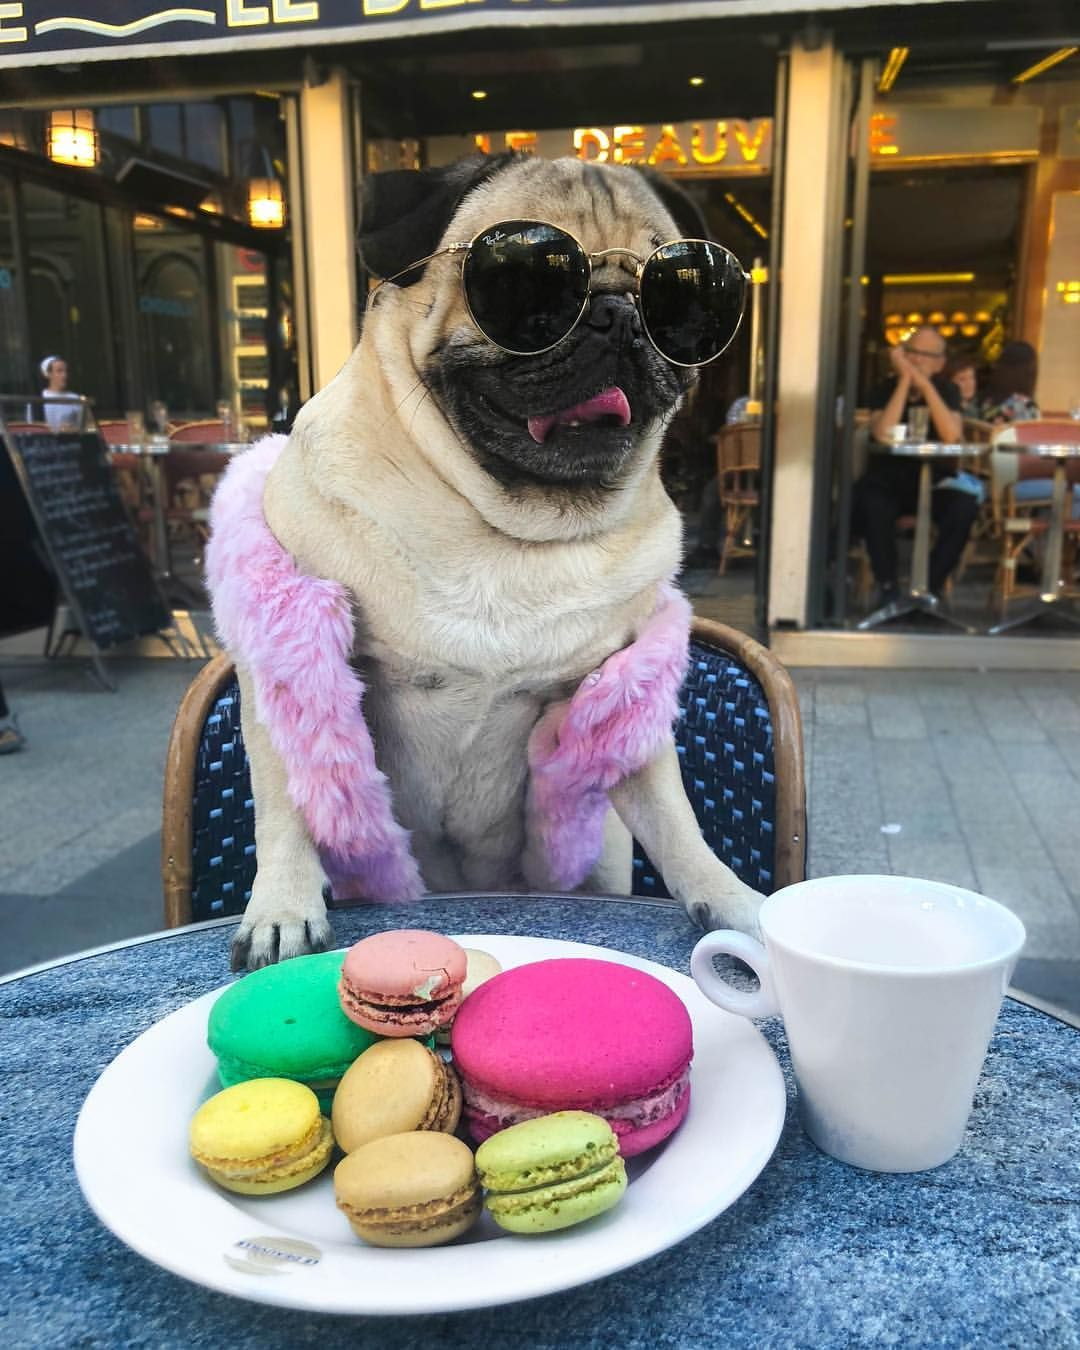 When A Pug Goes To Paris Doug Vote For Me To Win A People S